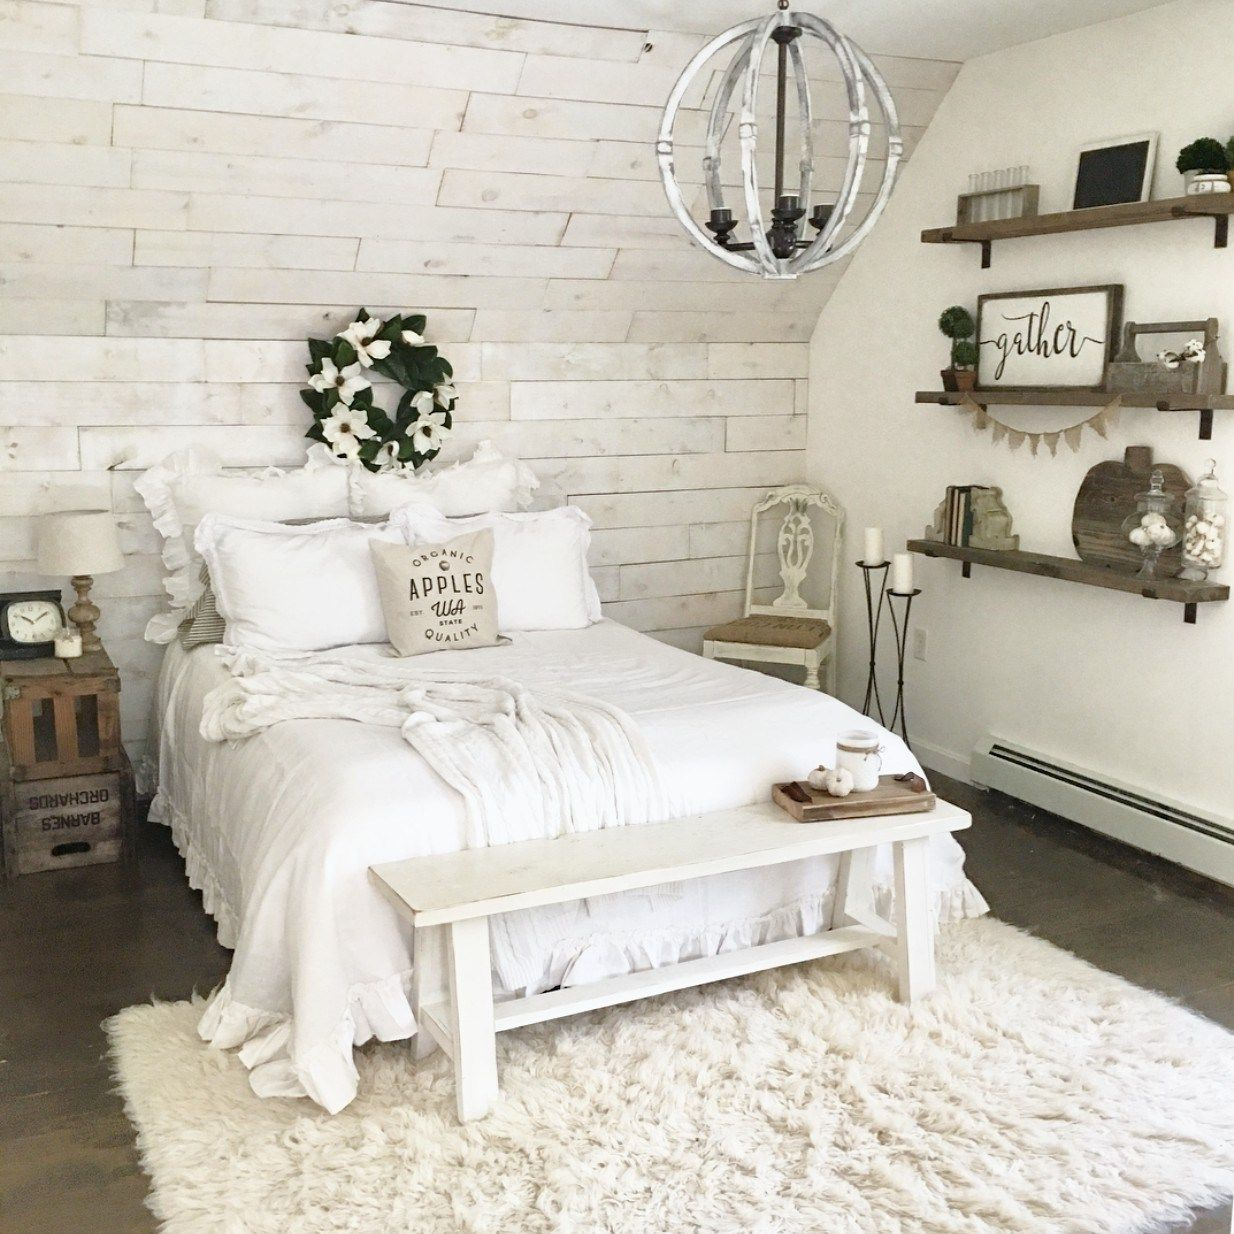 25 Bedroom Design Ideas For Your Home: Farmhouse Bedroom. Farmhouse Design. Magnolia Homes. Fixer